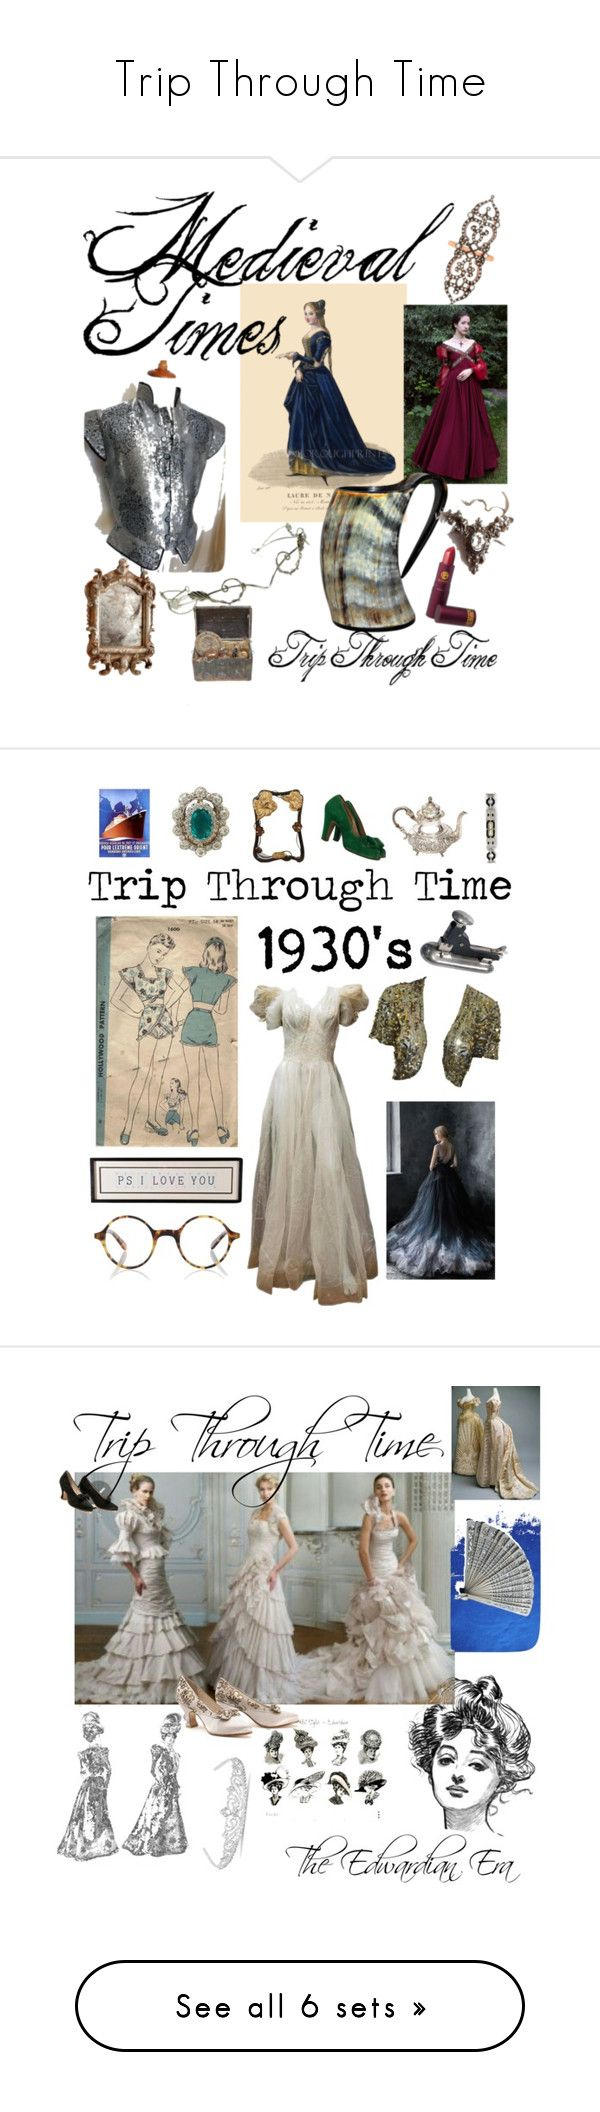 """""""Trip Through Time"""" by phoenix-ufacika ❤ liked on Polyvore featuring Sabine Getty, Cyan Design, Lipstick Queen, Tiffany & Co., Finlay & Co., Jon Richard, PAM, Lee, BERRICLE and Lacoste"""